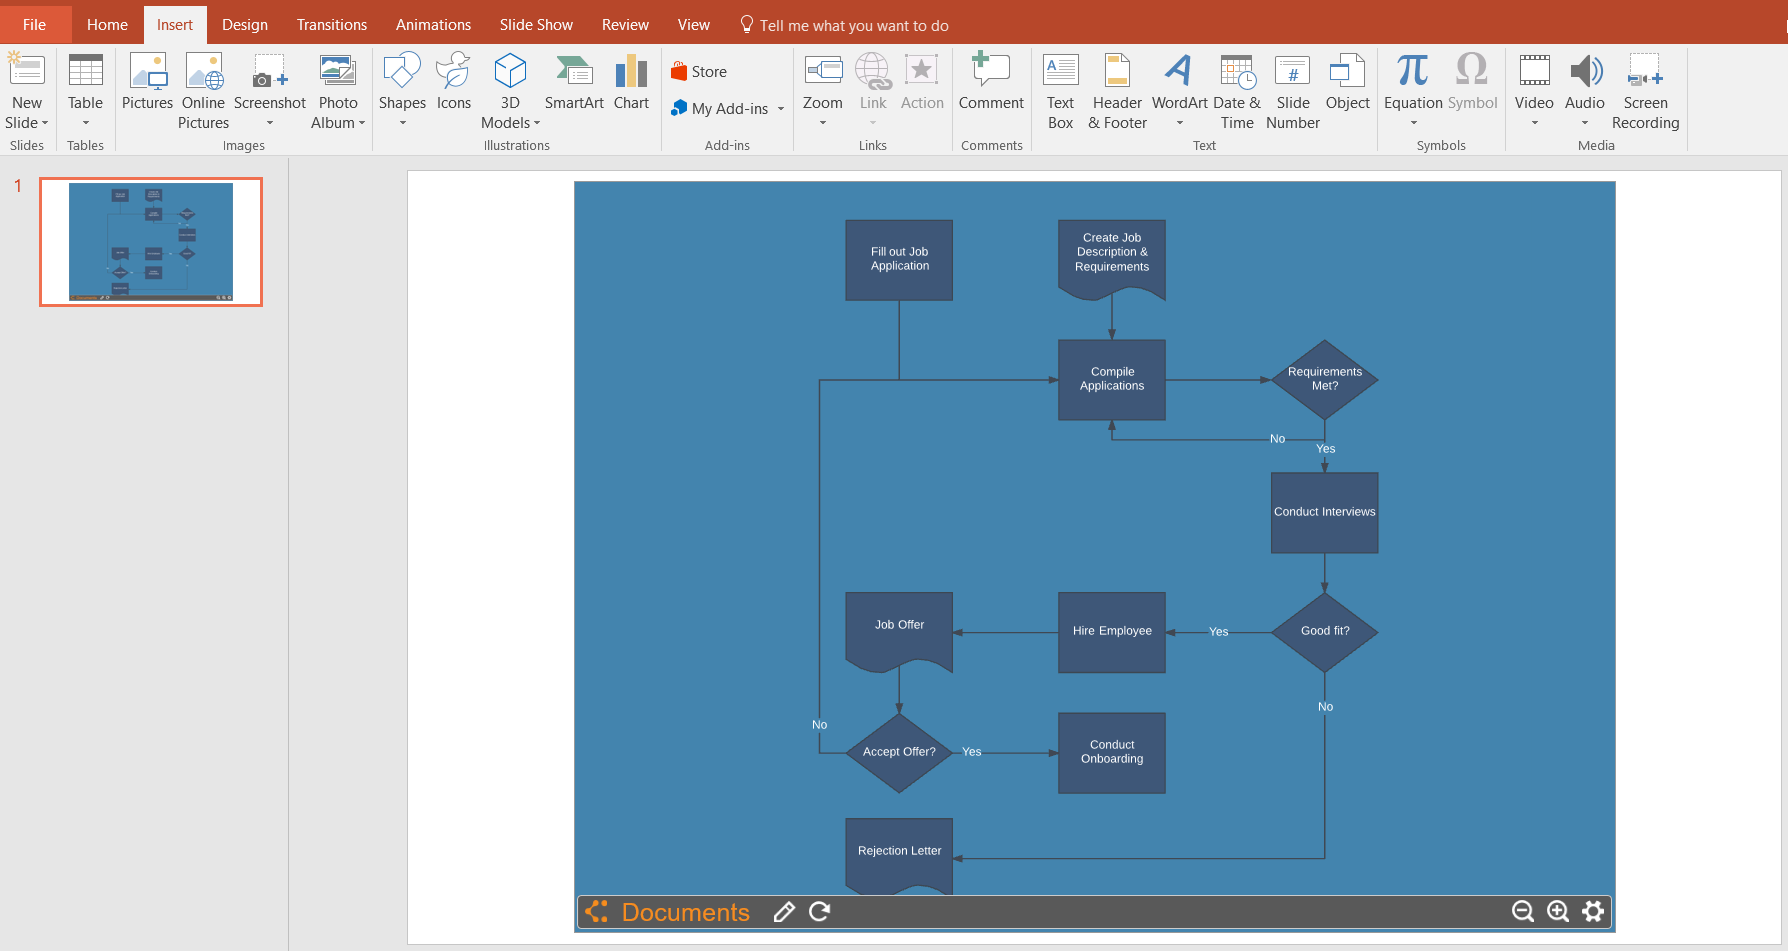 Open Your Powerpoint Presentation, Go To Your Add-Ins And Select Lucidchart  Within The Insert Tab.